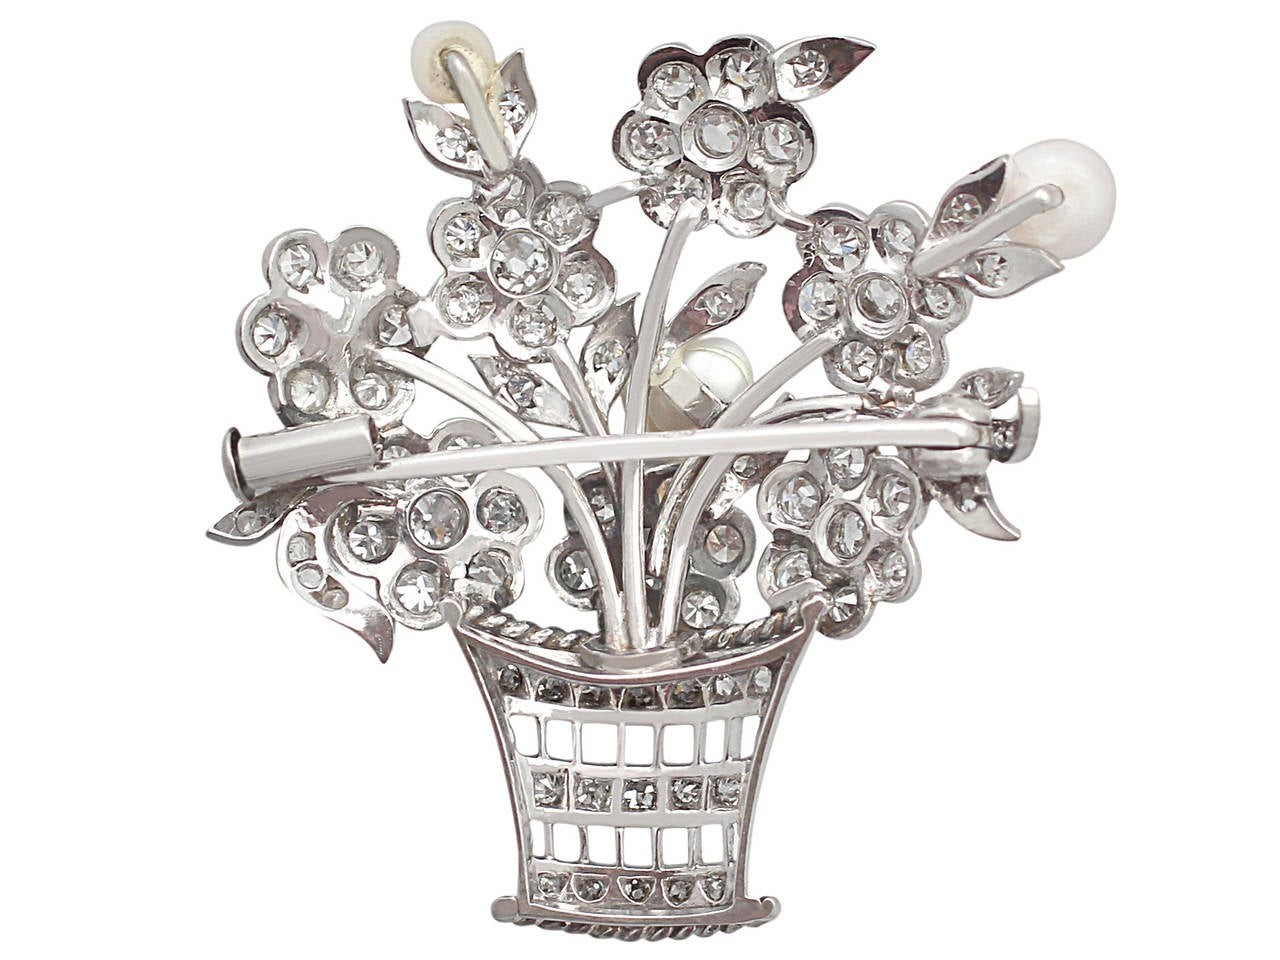 2.81Ct Diamond and Pearl, 14k White Gold Brooch - Antique Circa 1900 7